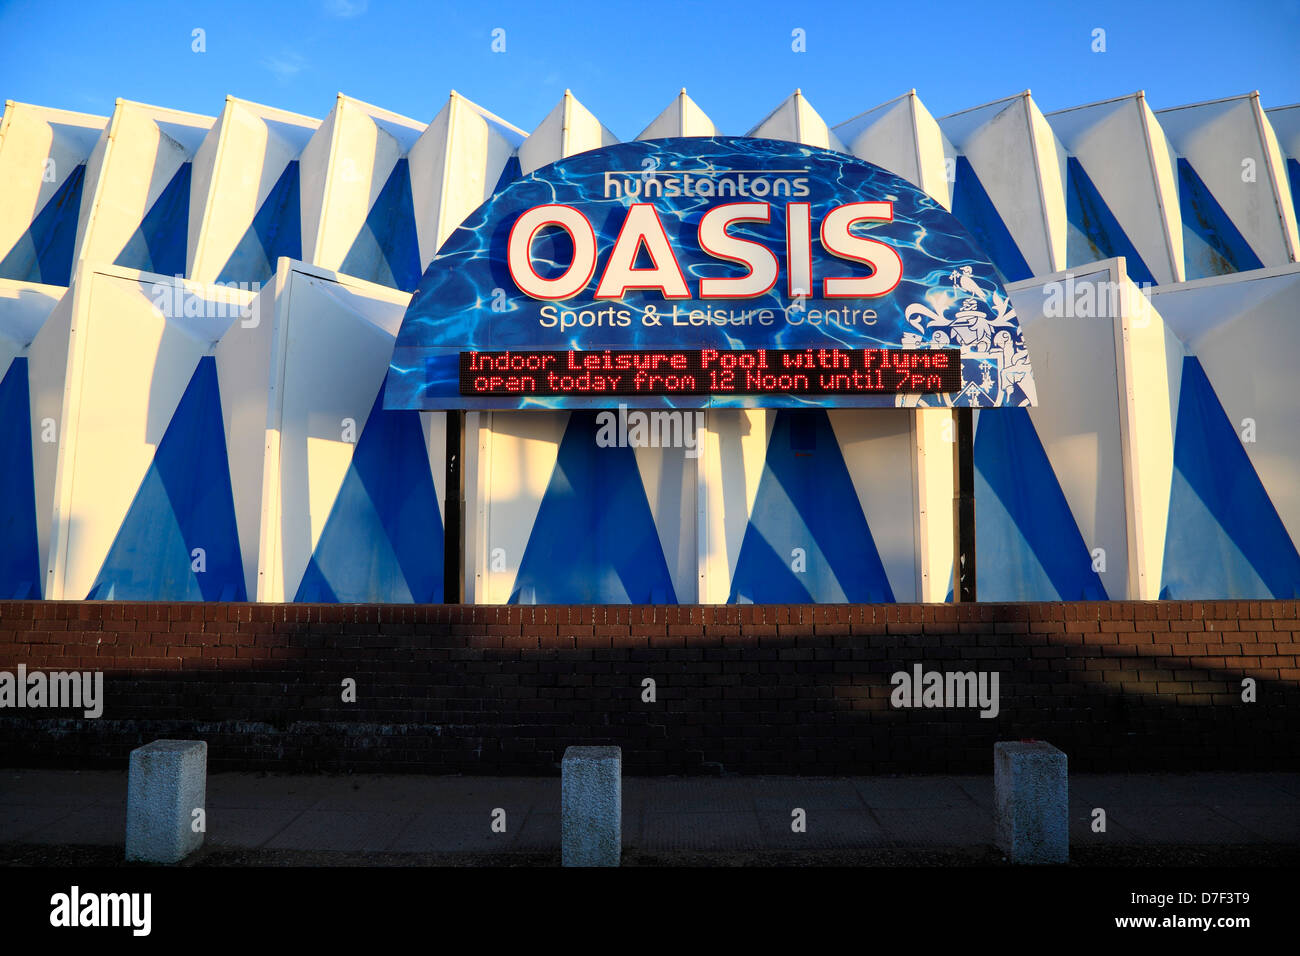 Hunstanton, Norfolk, The Oasis sports and leisure centre, center, England UK - Stock Image